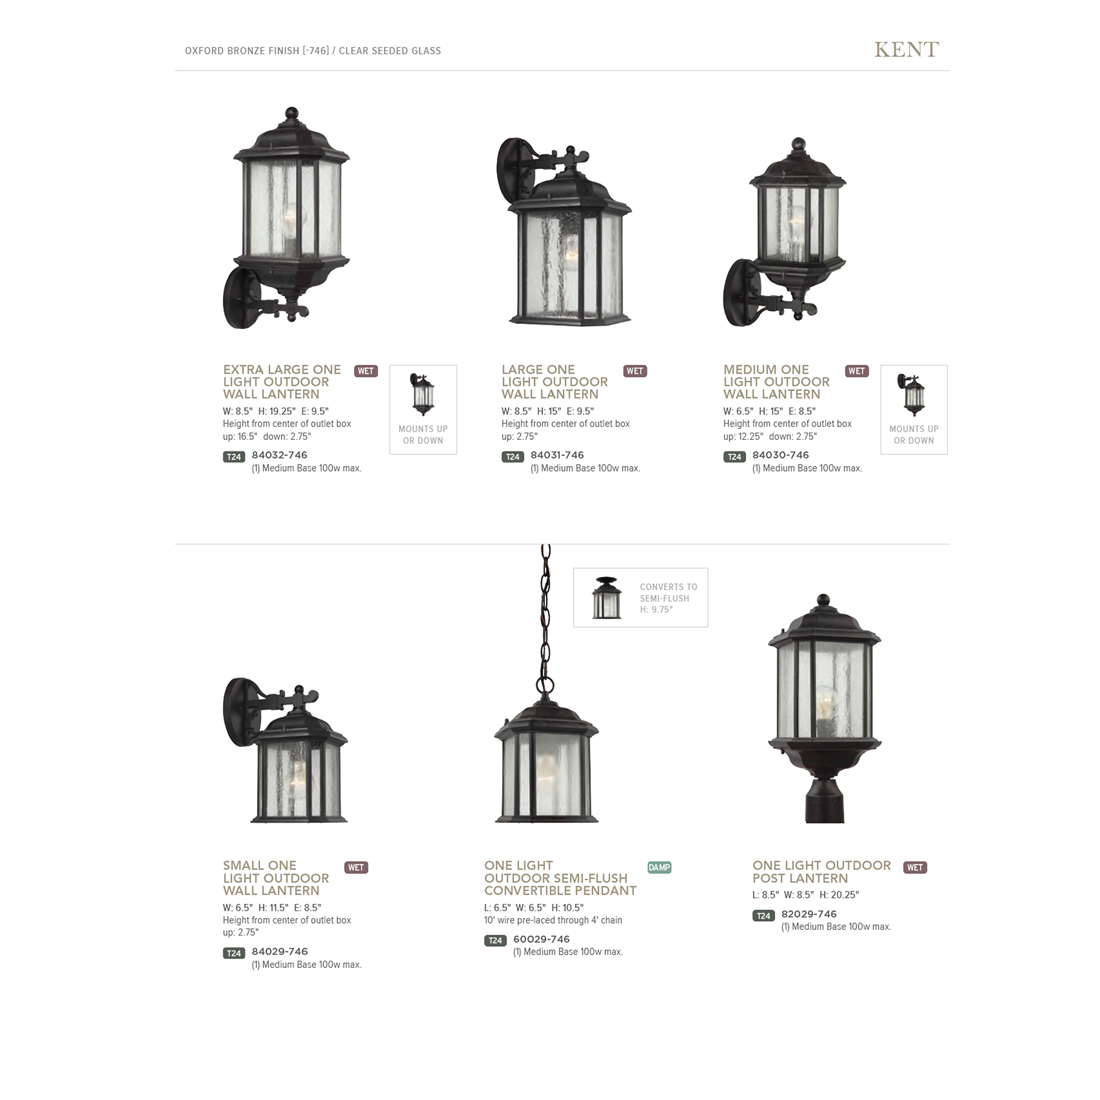 Sea Gull Lighting Kent 1 Light Oxford Bronze Outdoor Semi